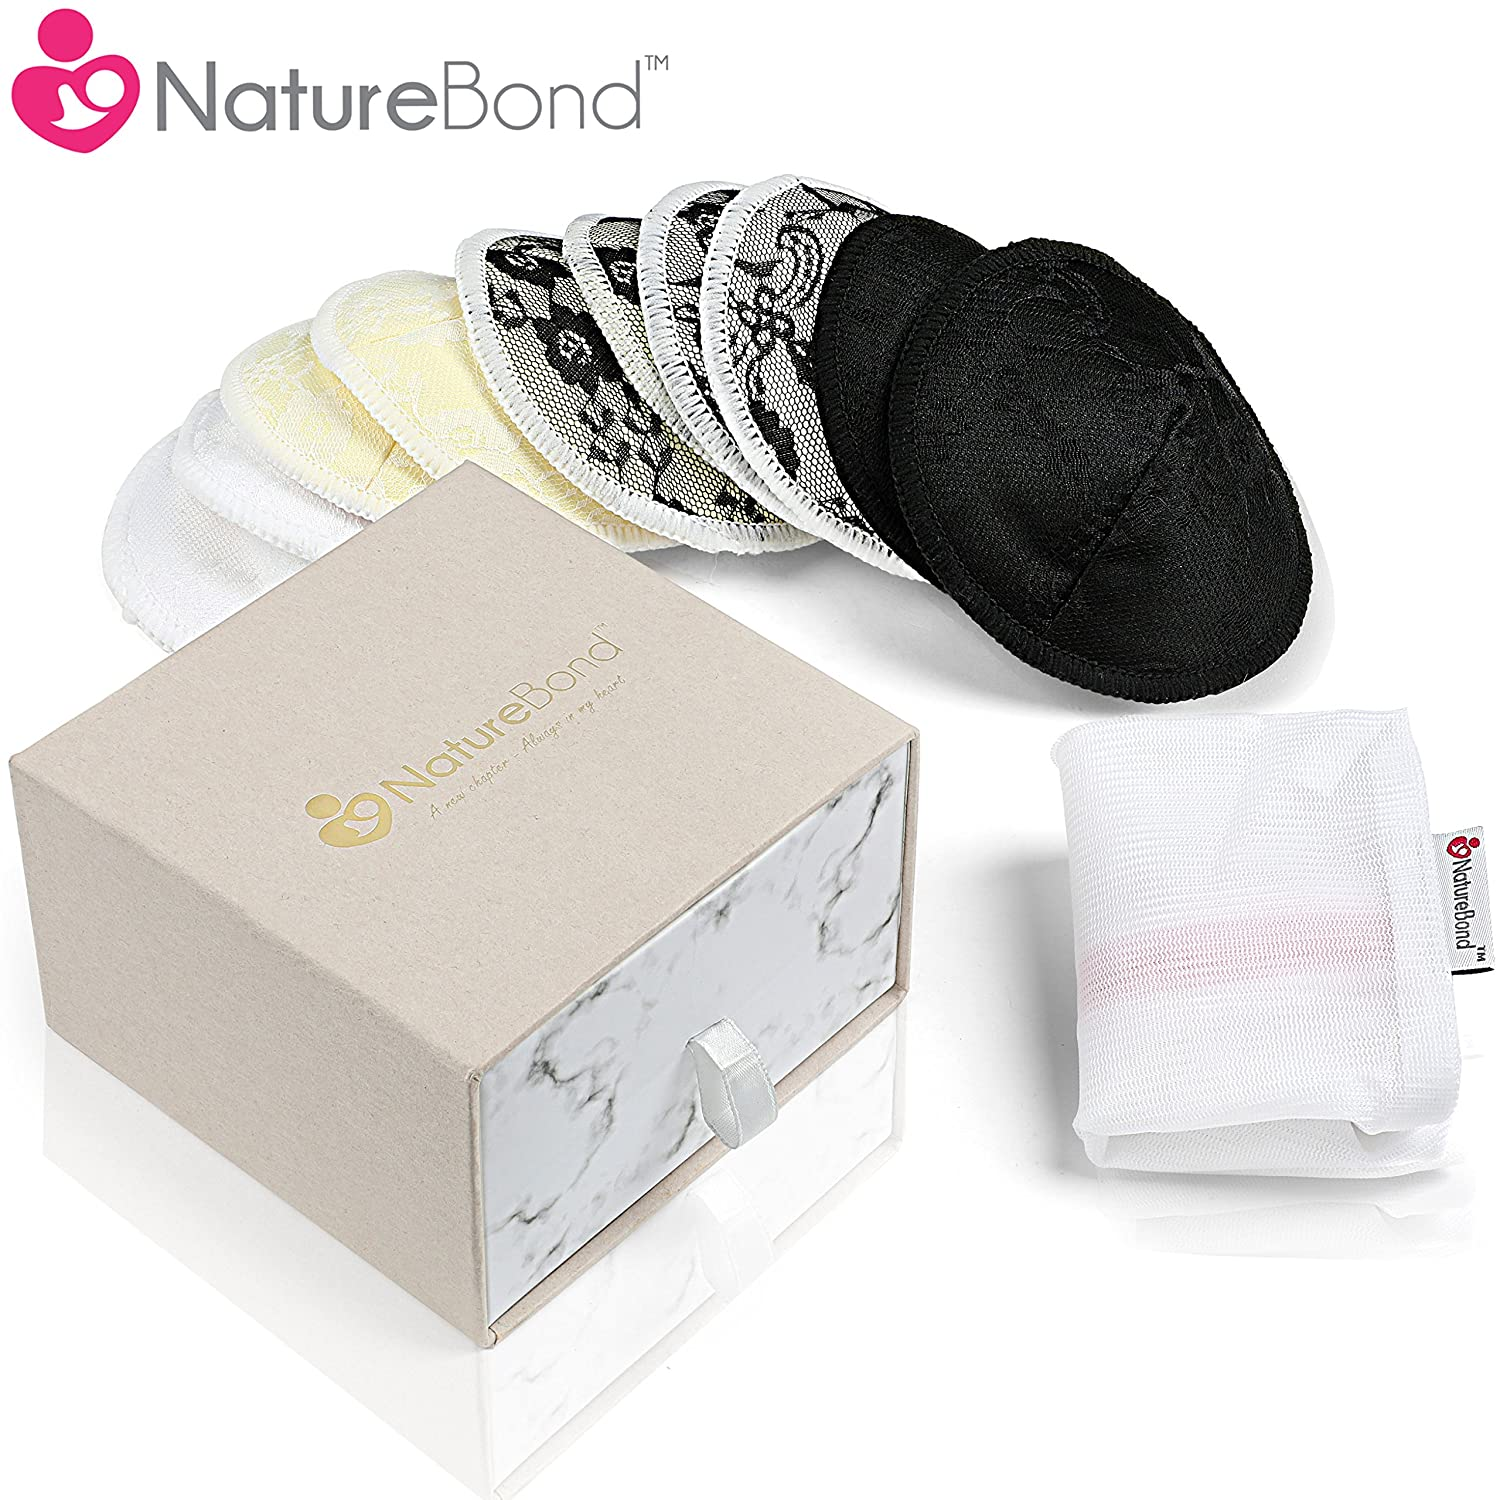 NatureBond Washable Organic Bamboo Nursing Pads (10 Pack) | Contoured Reusable Breast/Breastfeeding Lace Pads | Beautiful Absorbent Hypoallergenic | Bonus Large Laundry Bag | Perfect Baby Shower Gift NB005